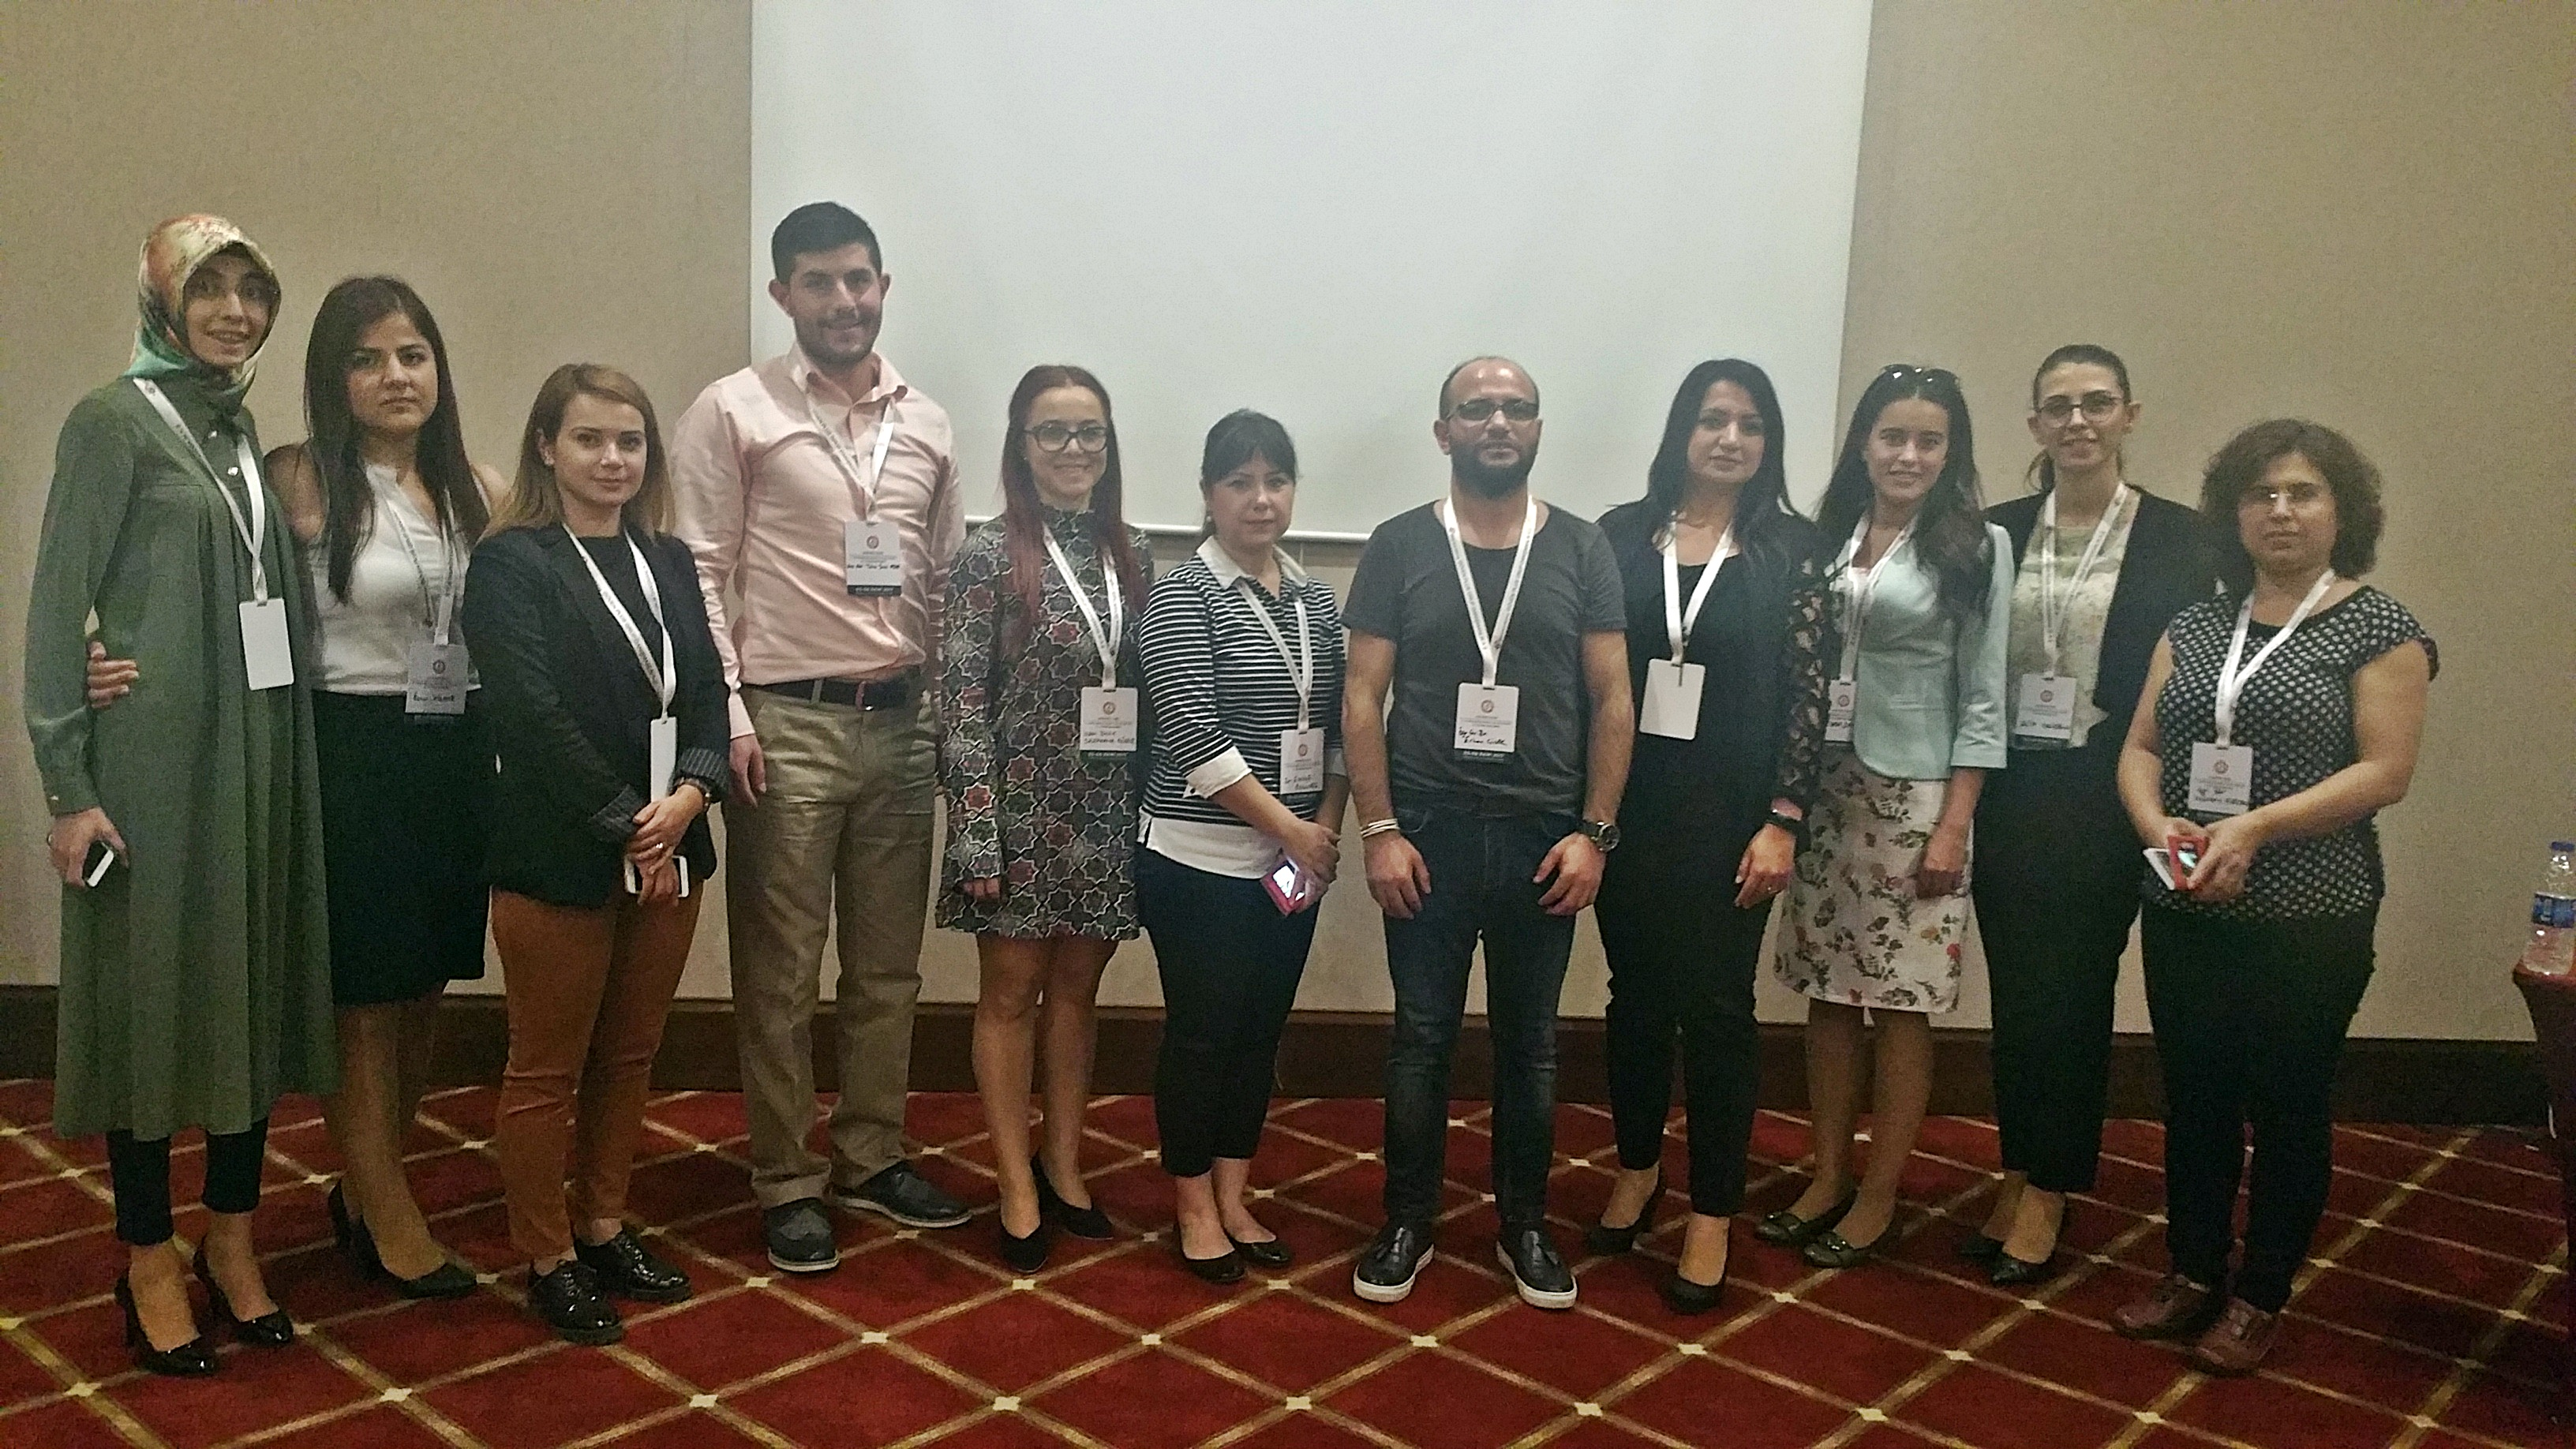 Near East University Department of Nursing has been represented at the International Congress on Women's and Children's Health and Education in Kocaeli